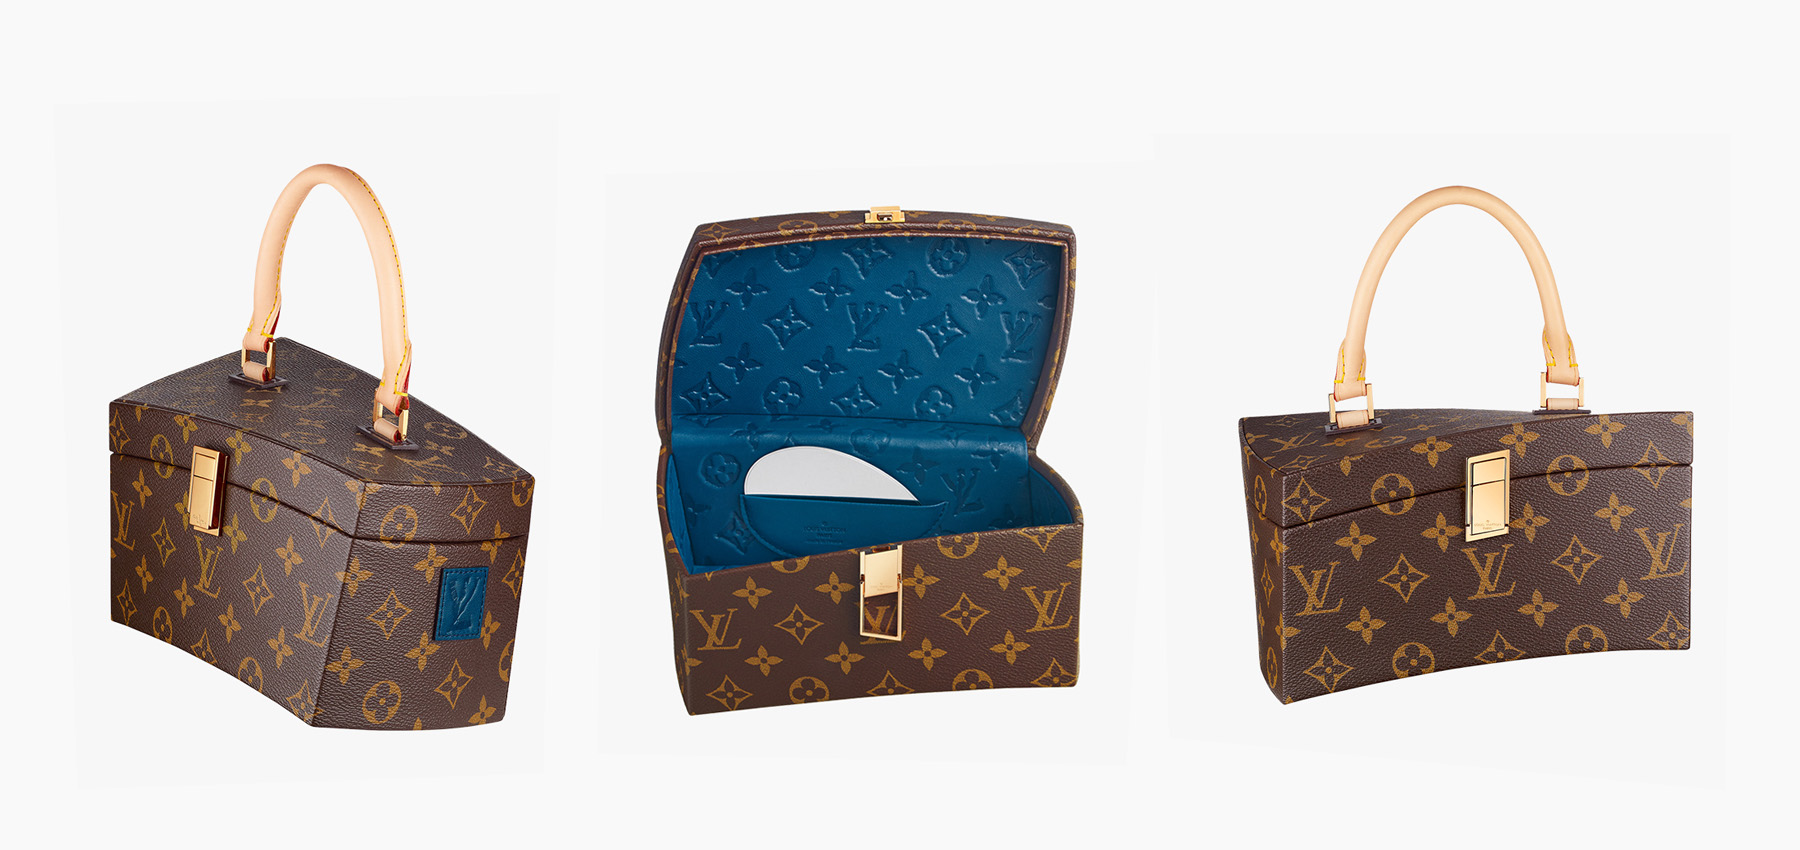 Frank gehry and louis vuitton a great match the leading salons of the world - Frank gehry louis vuitton ...